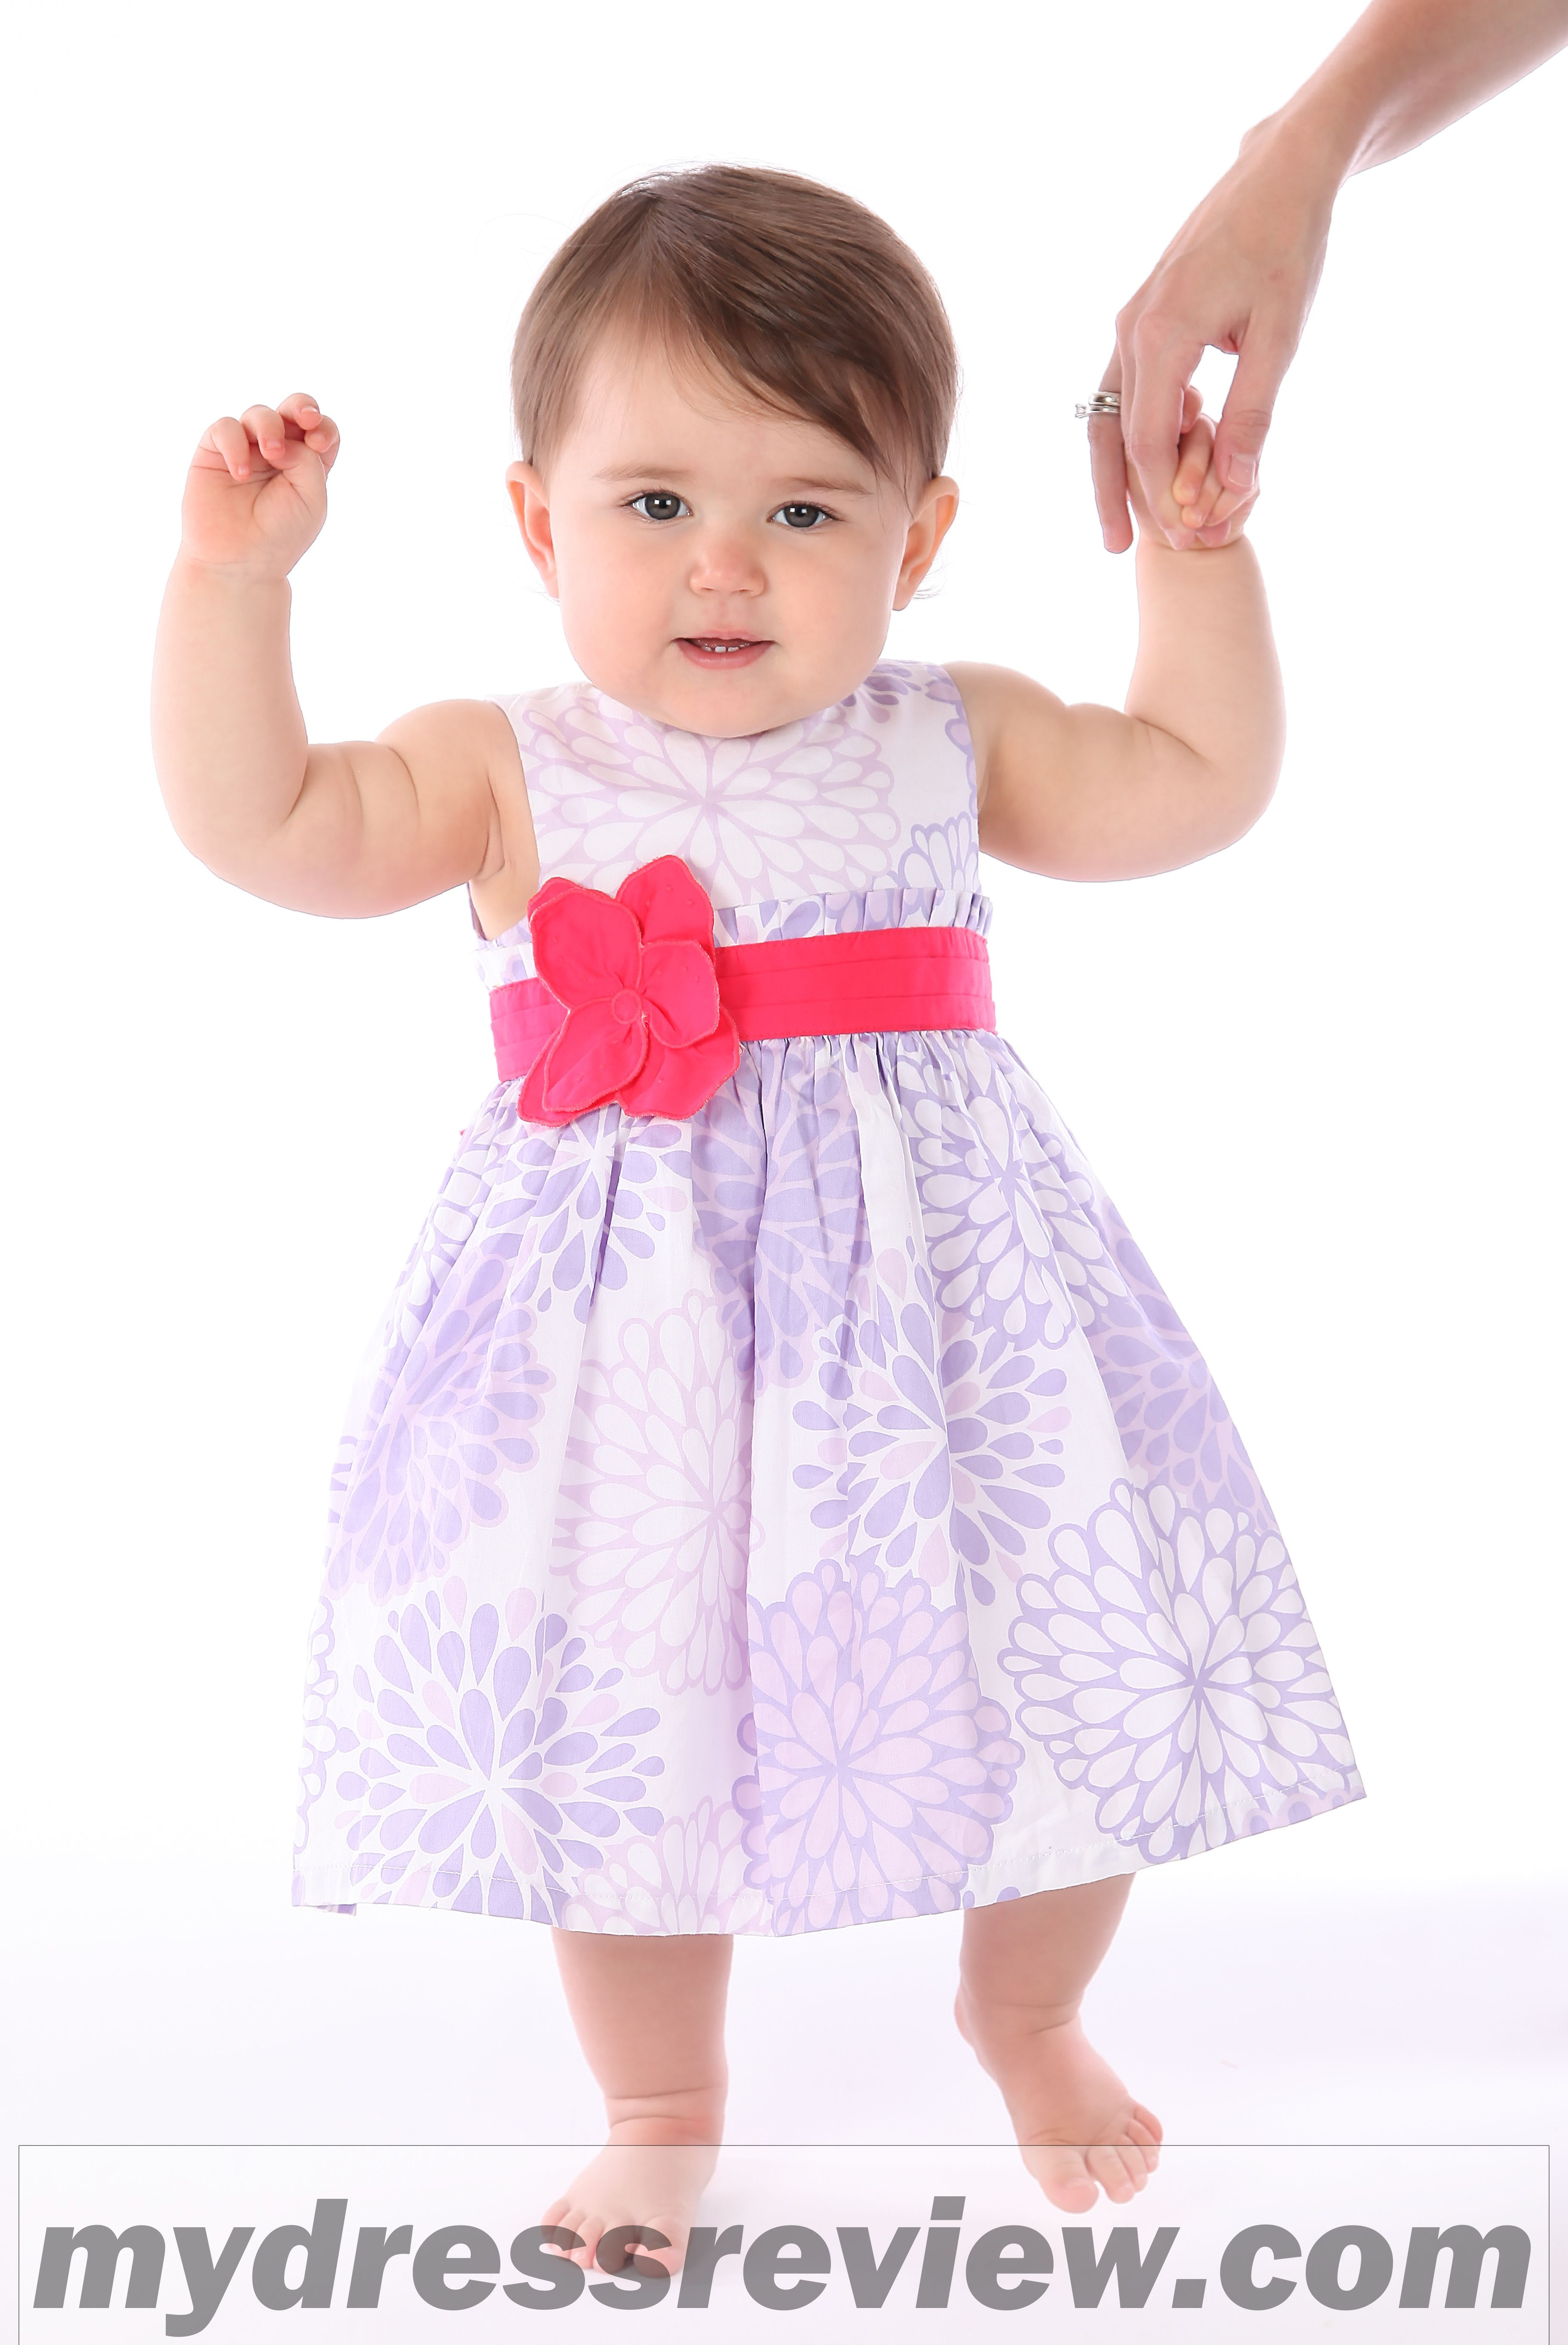 Infant Birthday Dress & Clothing Brand Reviews